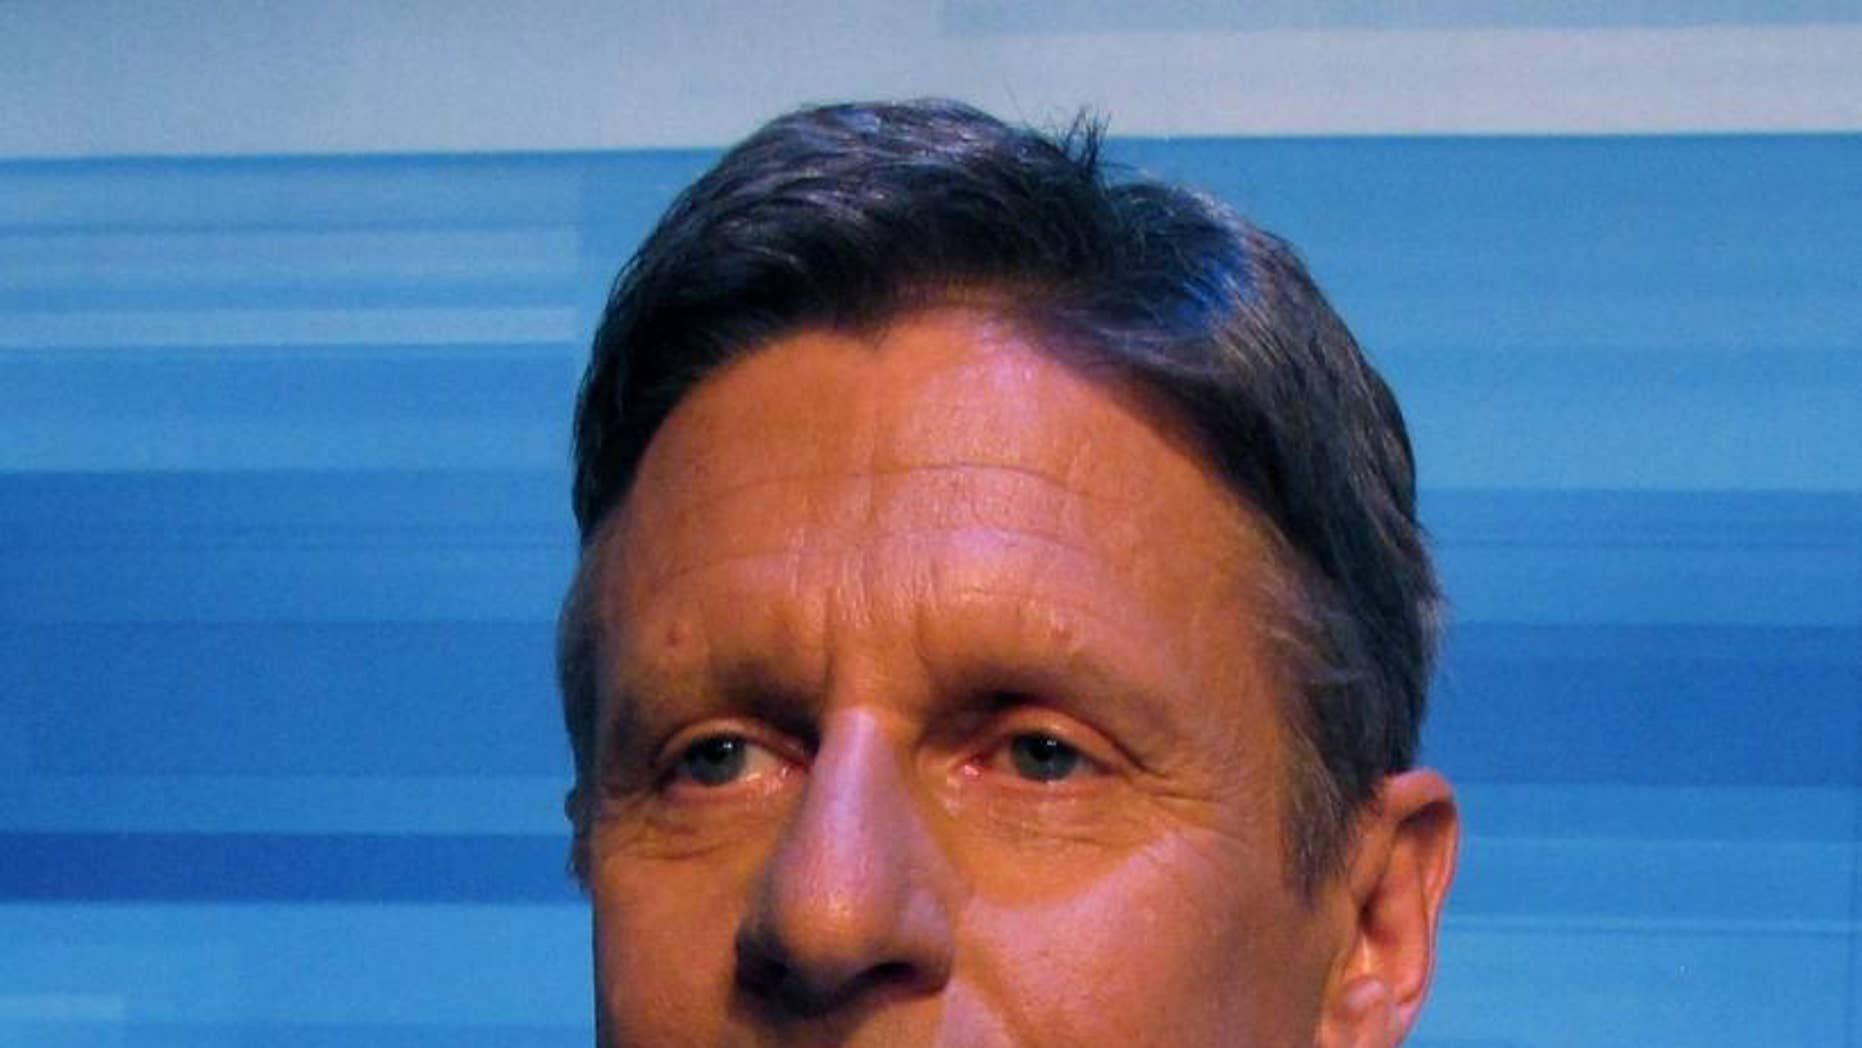 Former New Mexico Gov. Gary Johnson at the May 5, 2011 Republican Presidential Debate in South Carolina (FOX News Photo)